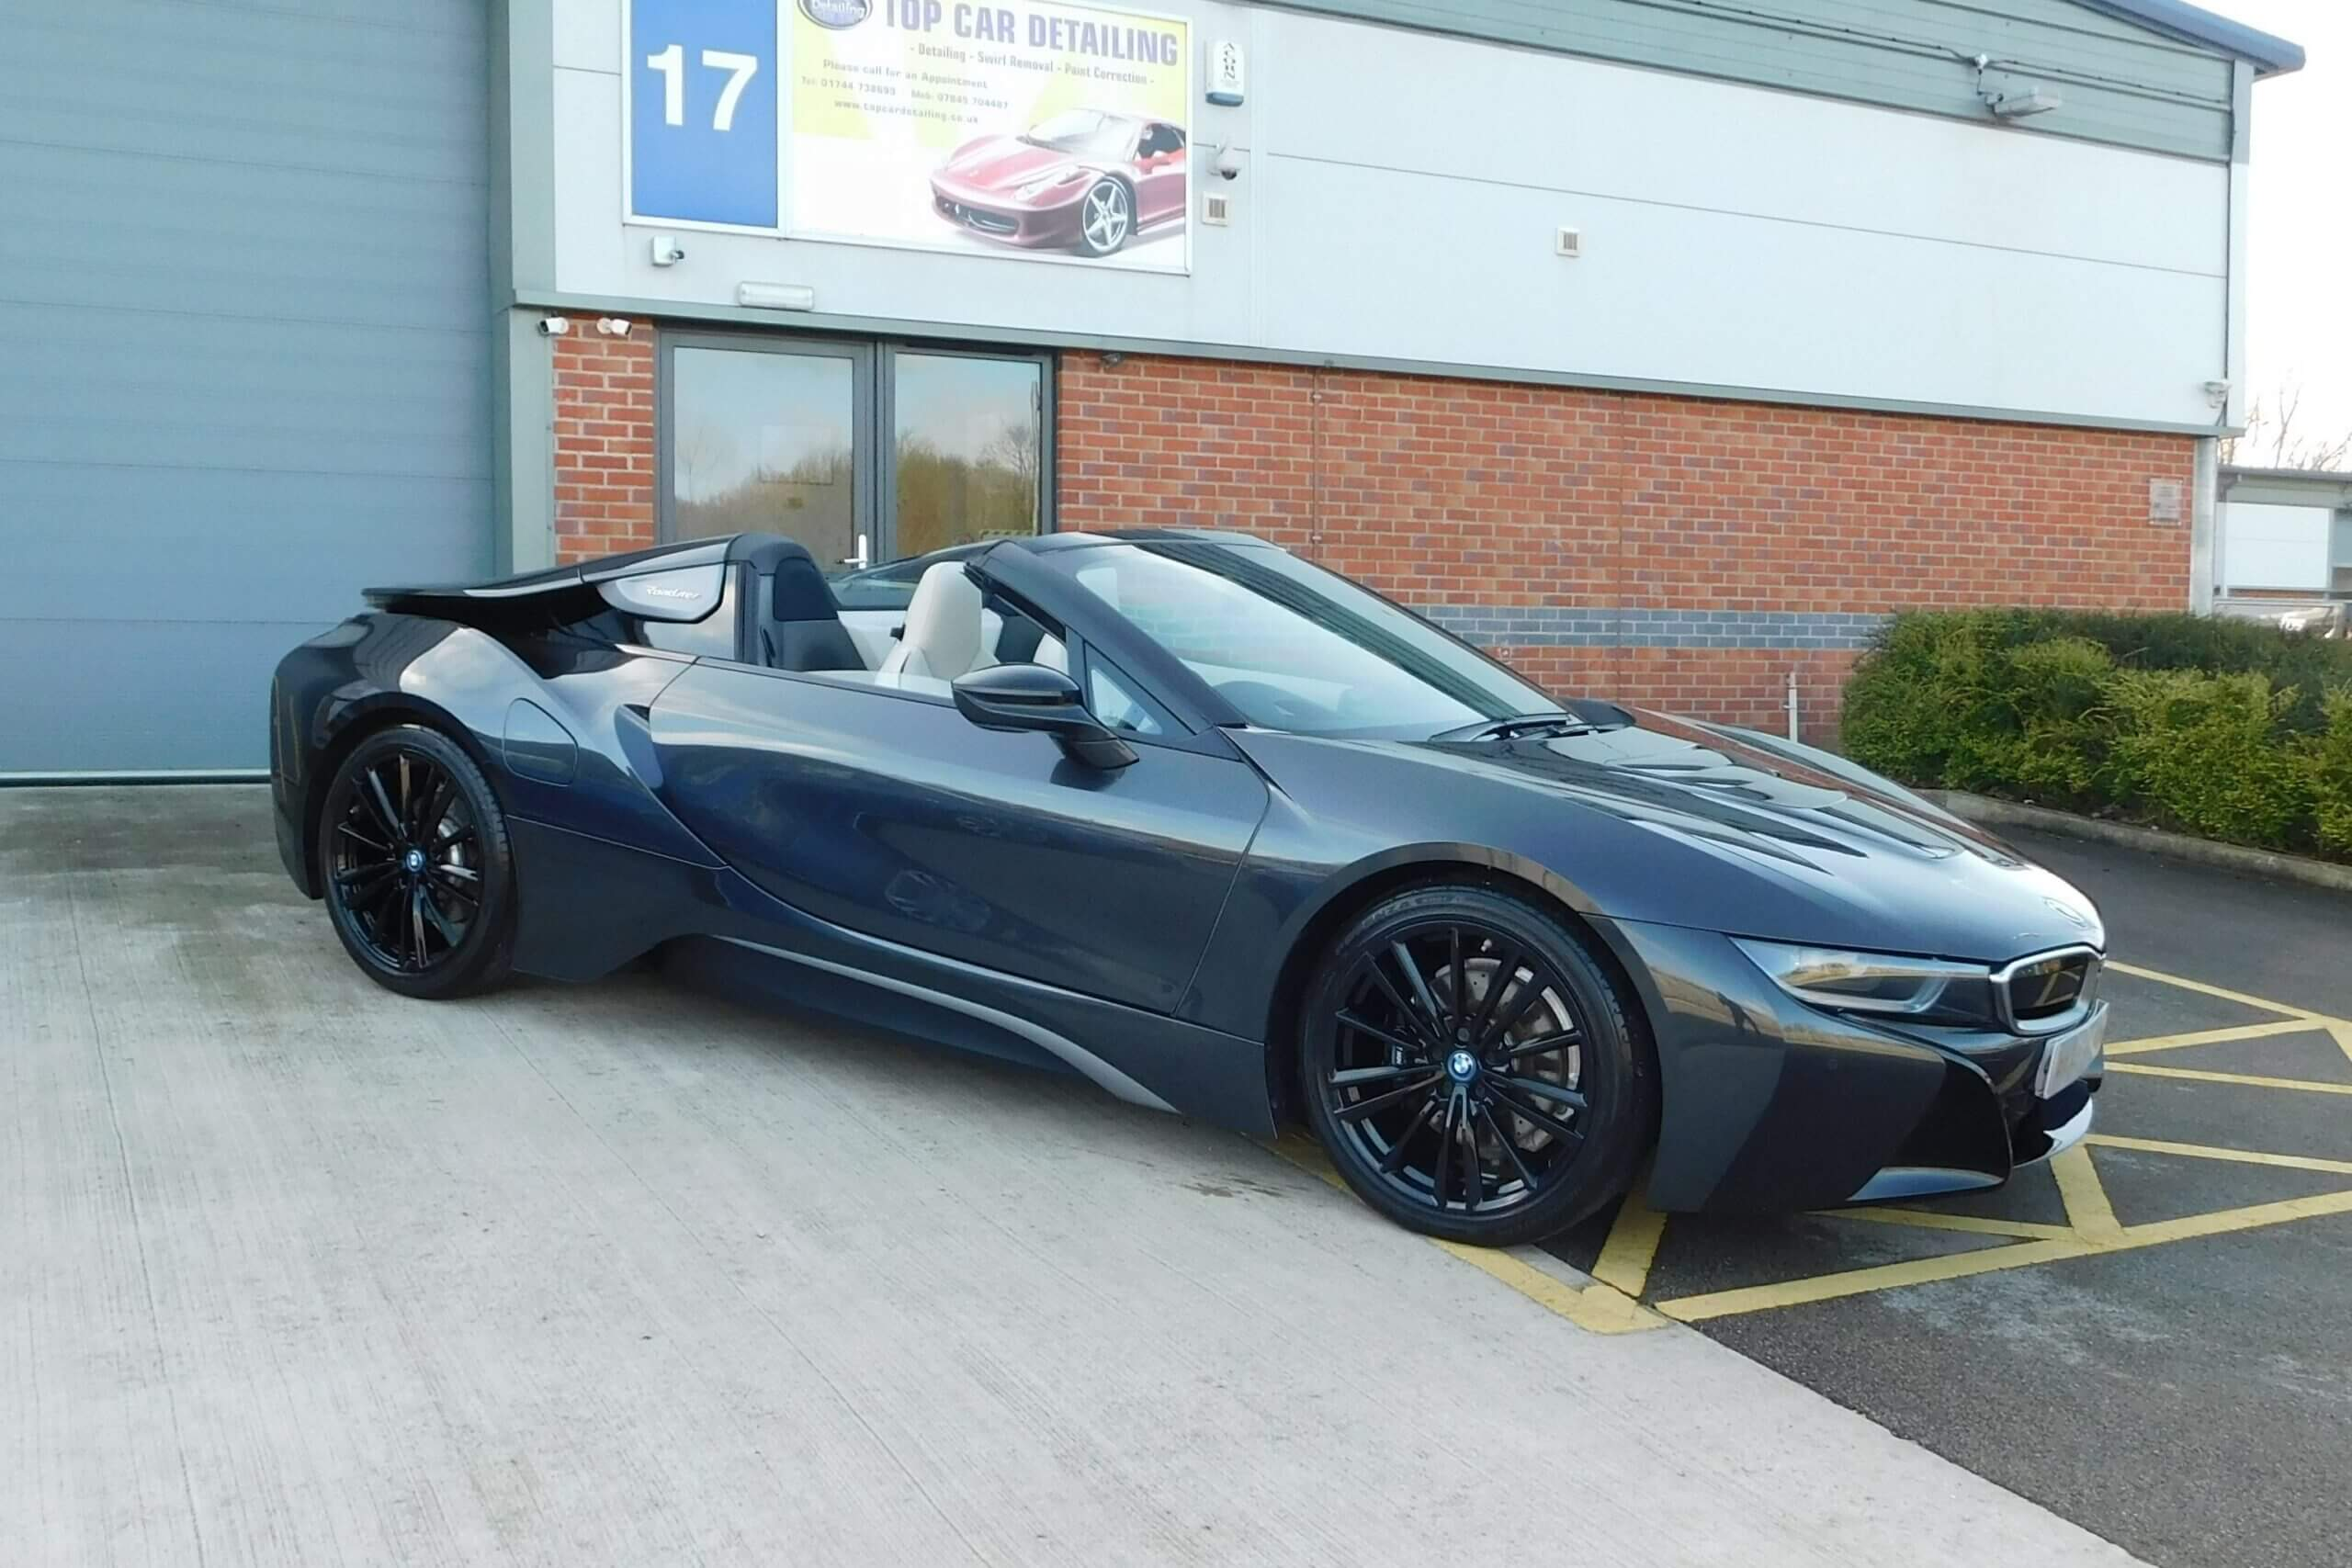 BMW i8 with Ceramic Coating